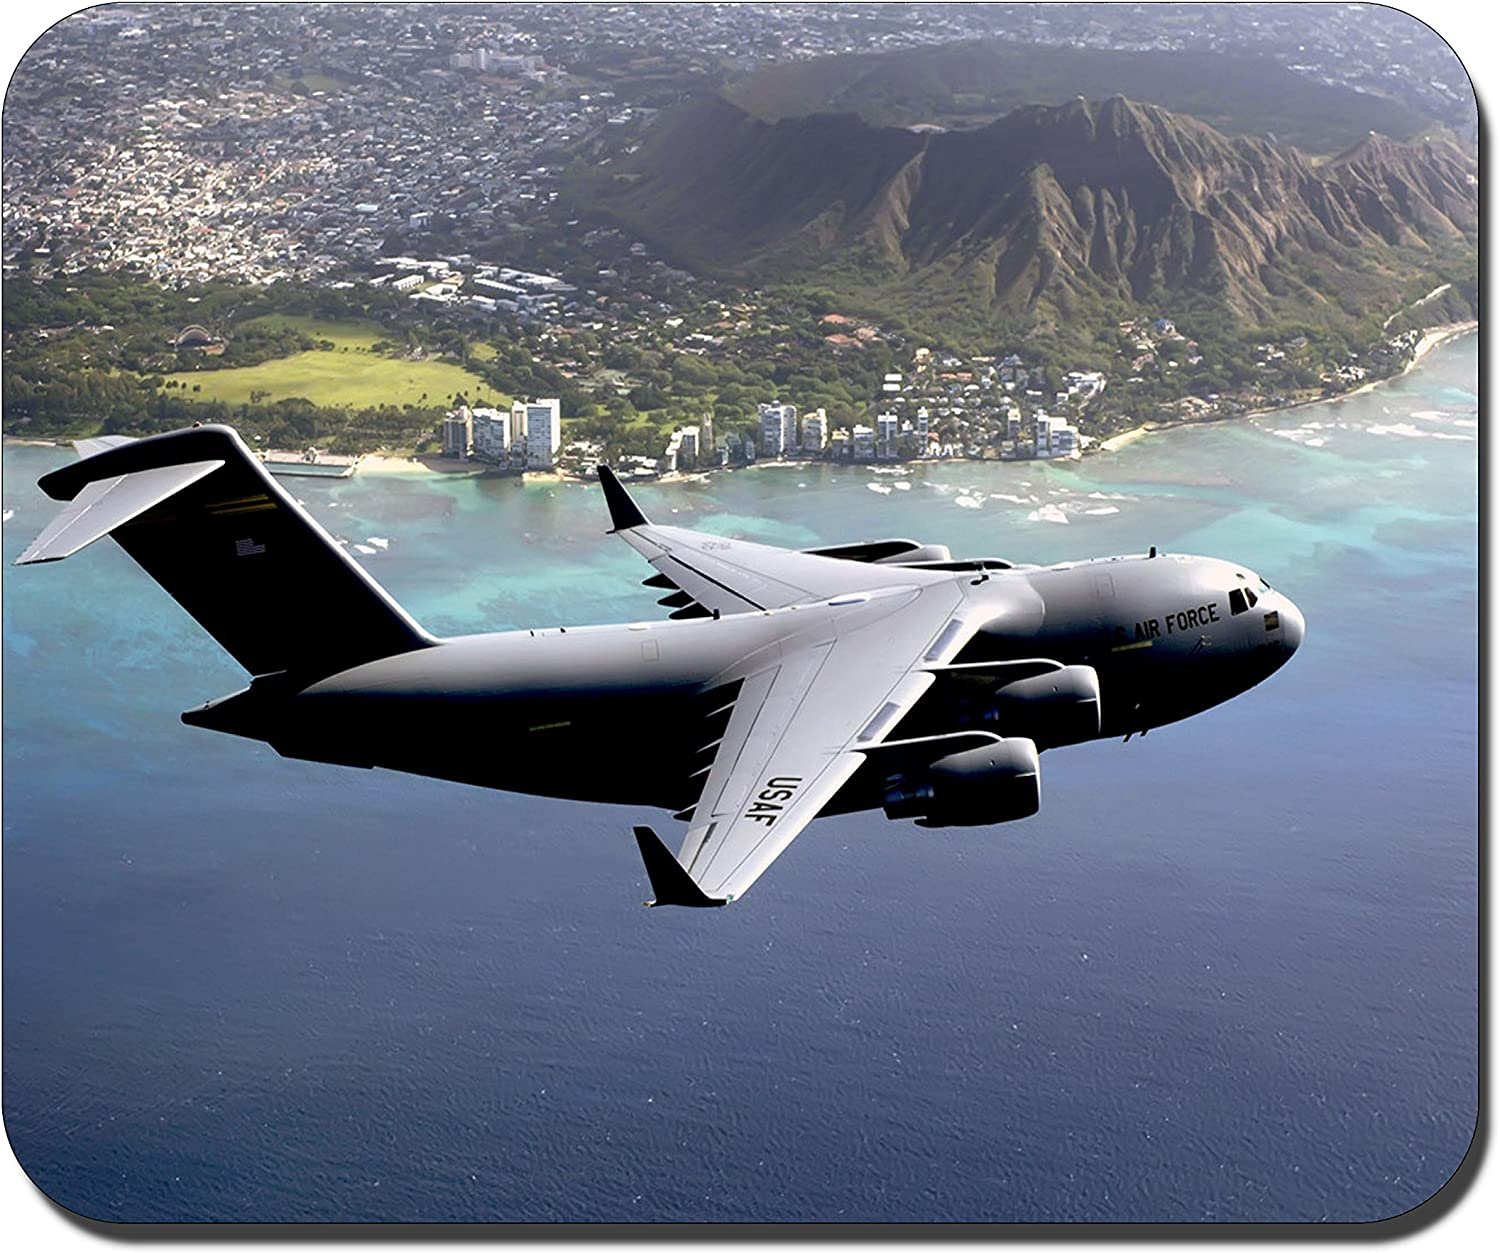 U.S Air Force Personalized Rectangle Gaming Mouse Pads Size:9.4 x7.9 RB277-7